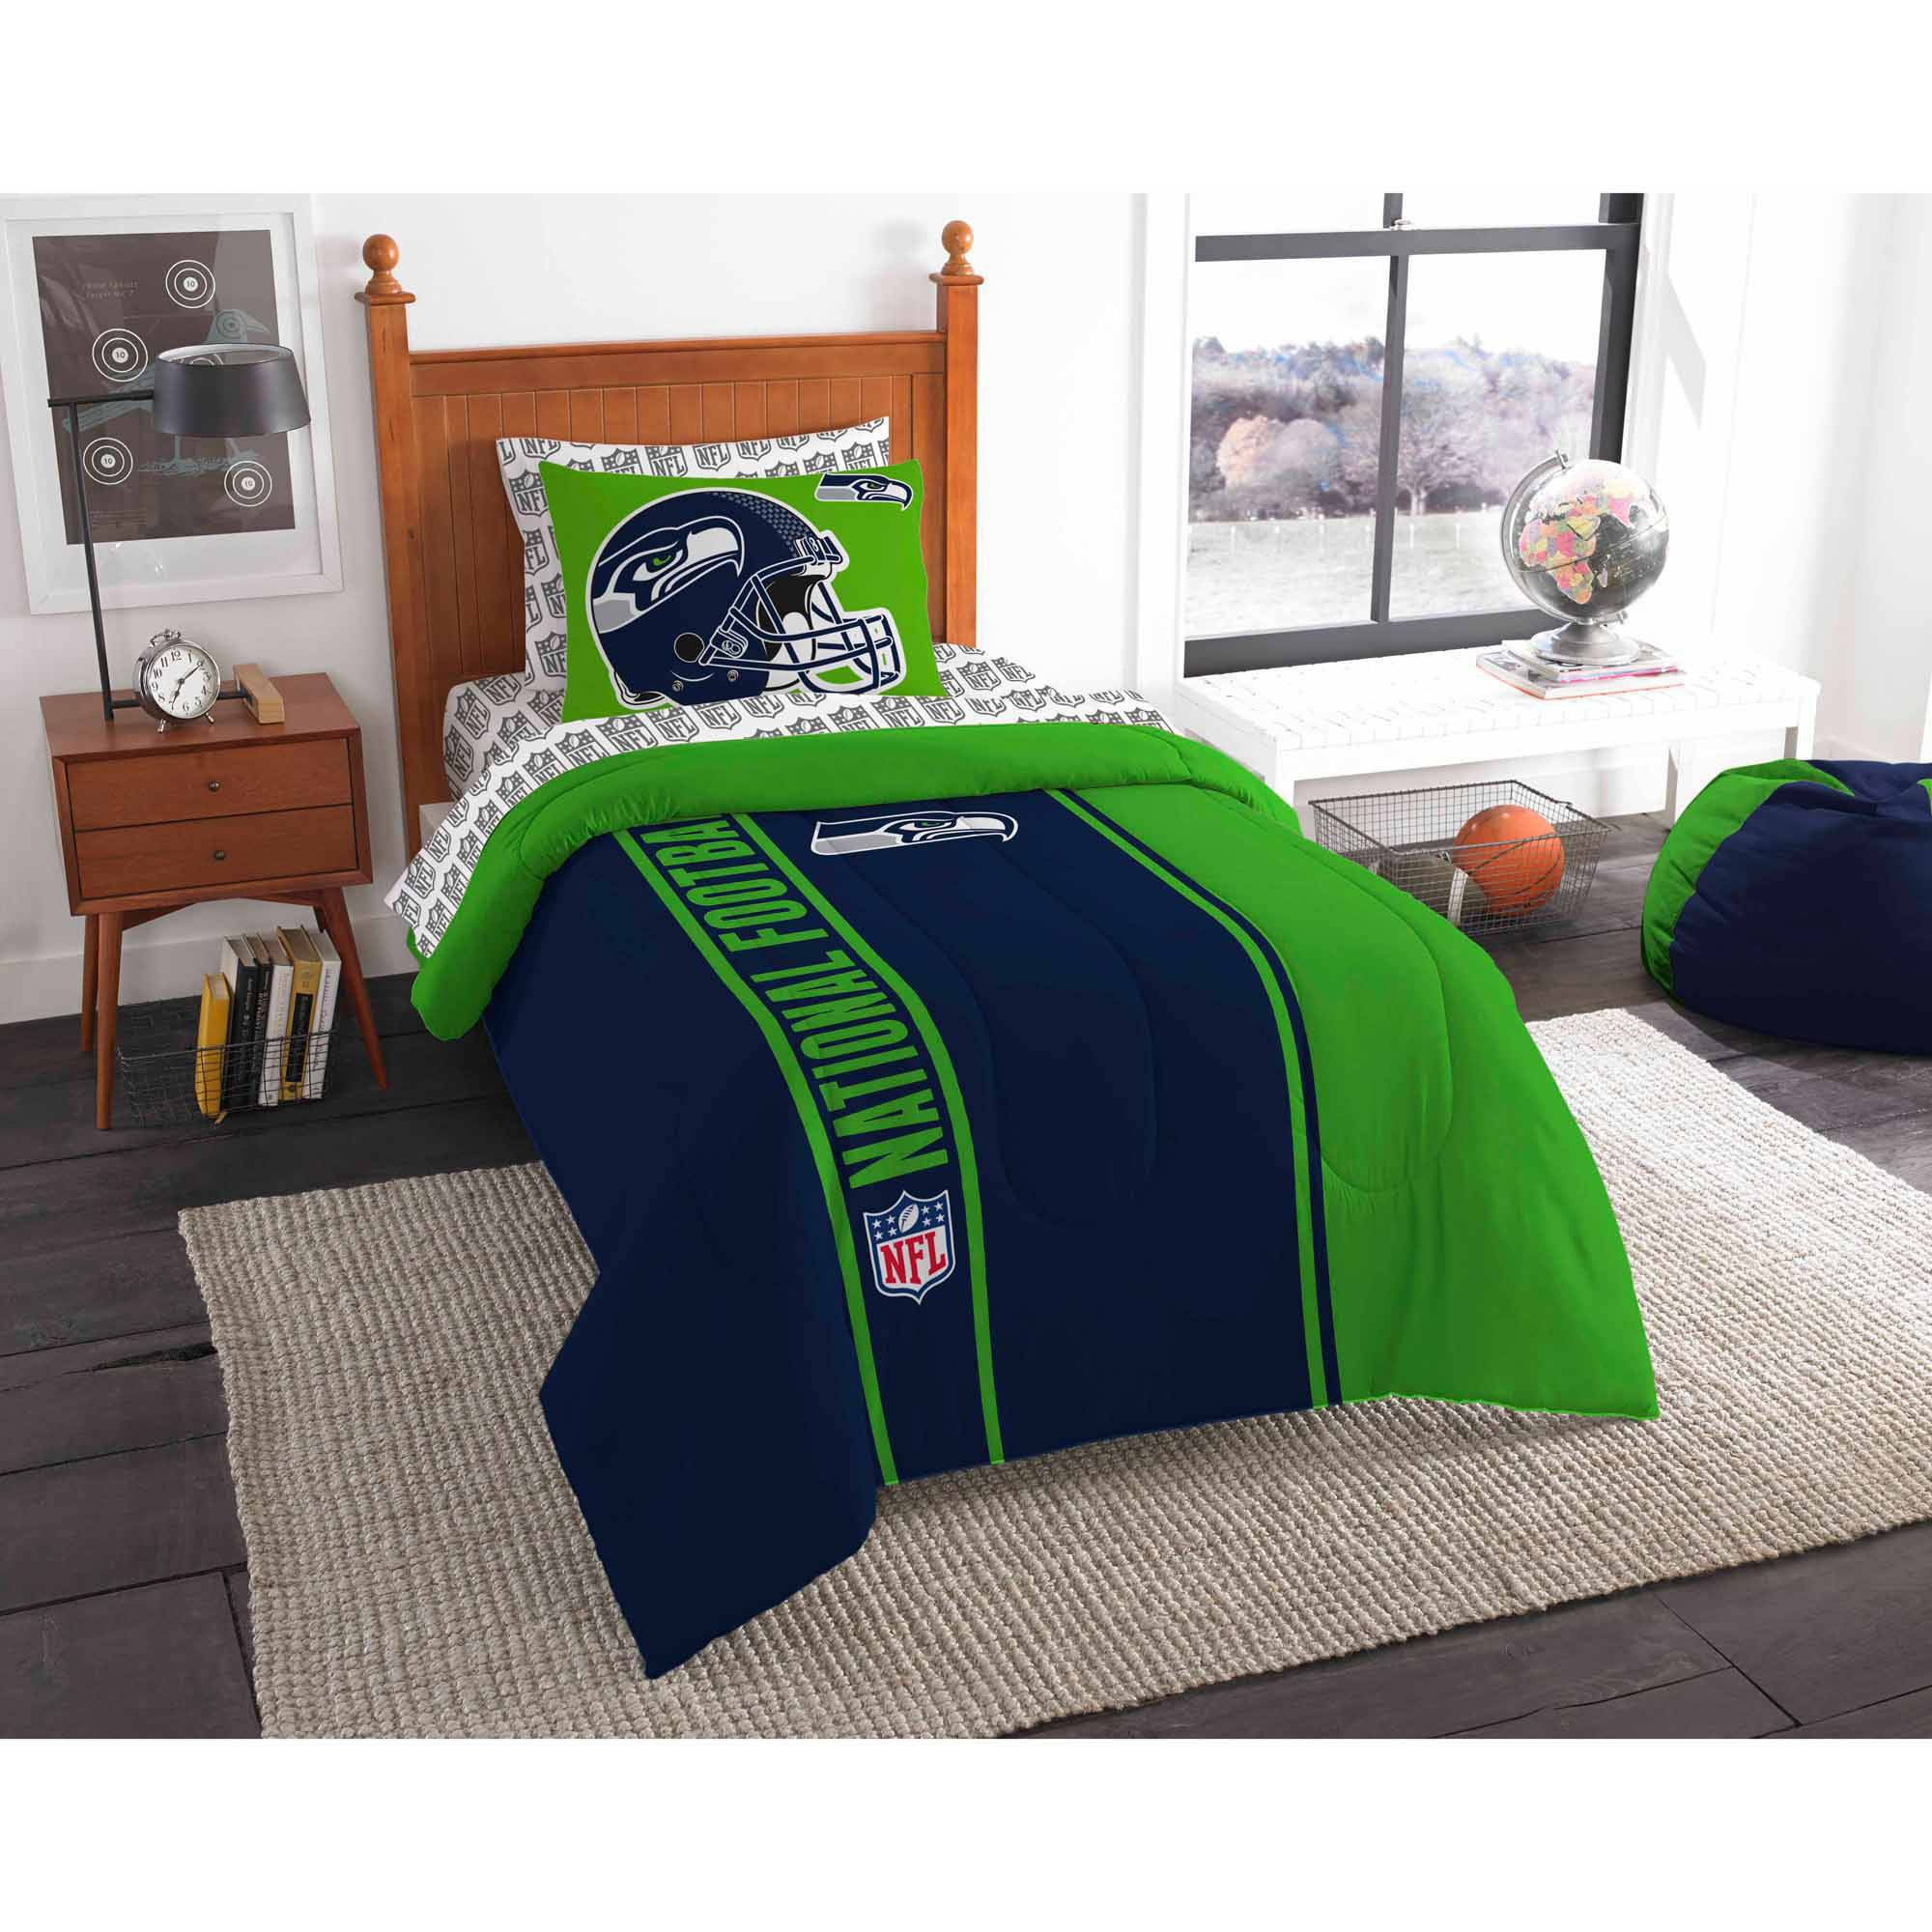 pin prints fabric him her team football table runners for furniture seahawks season gifts seattle